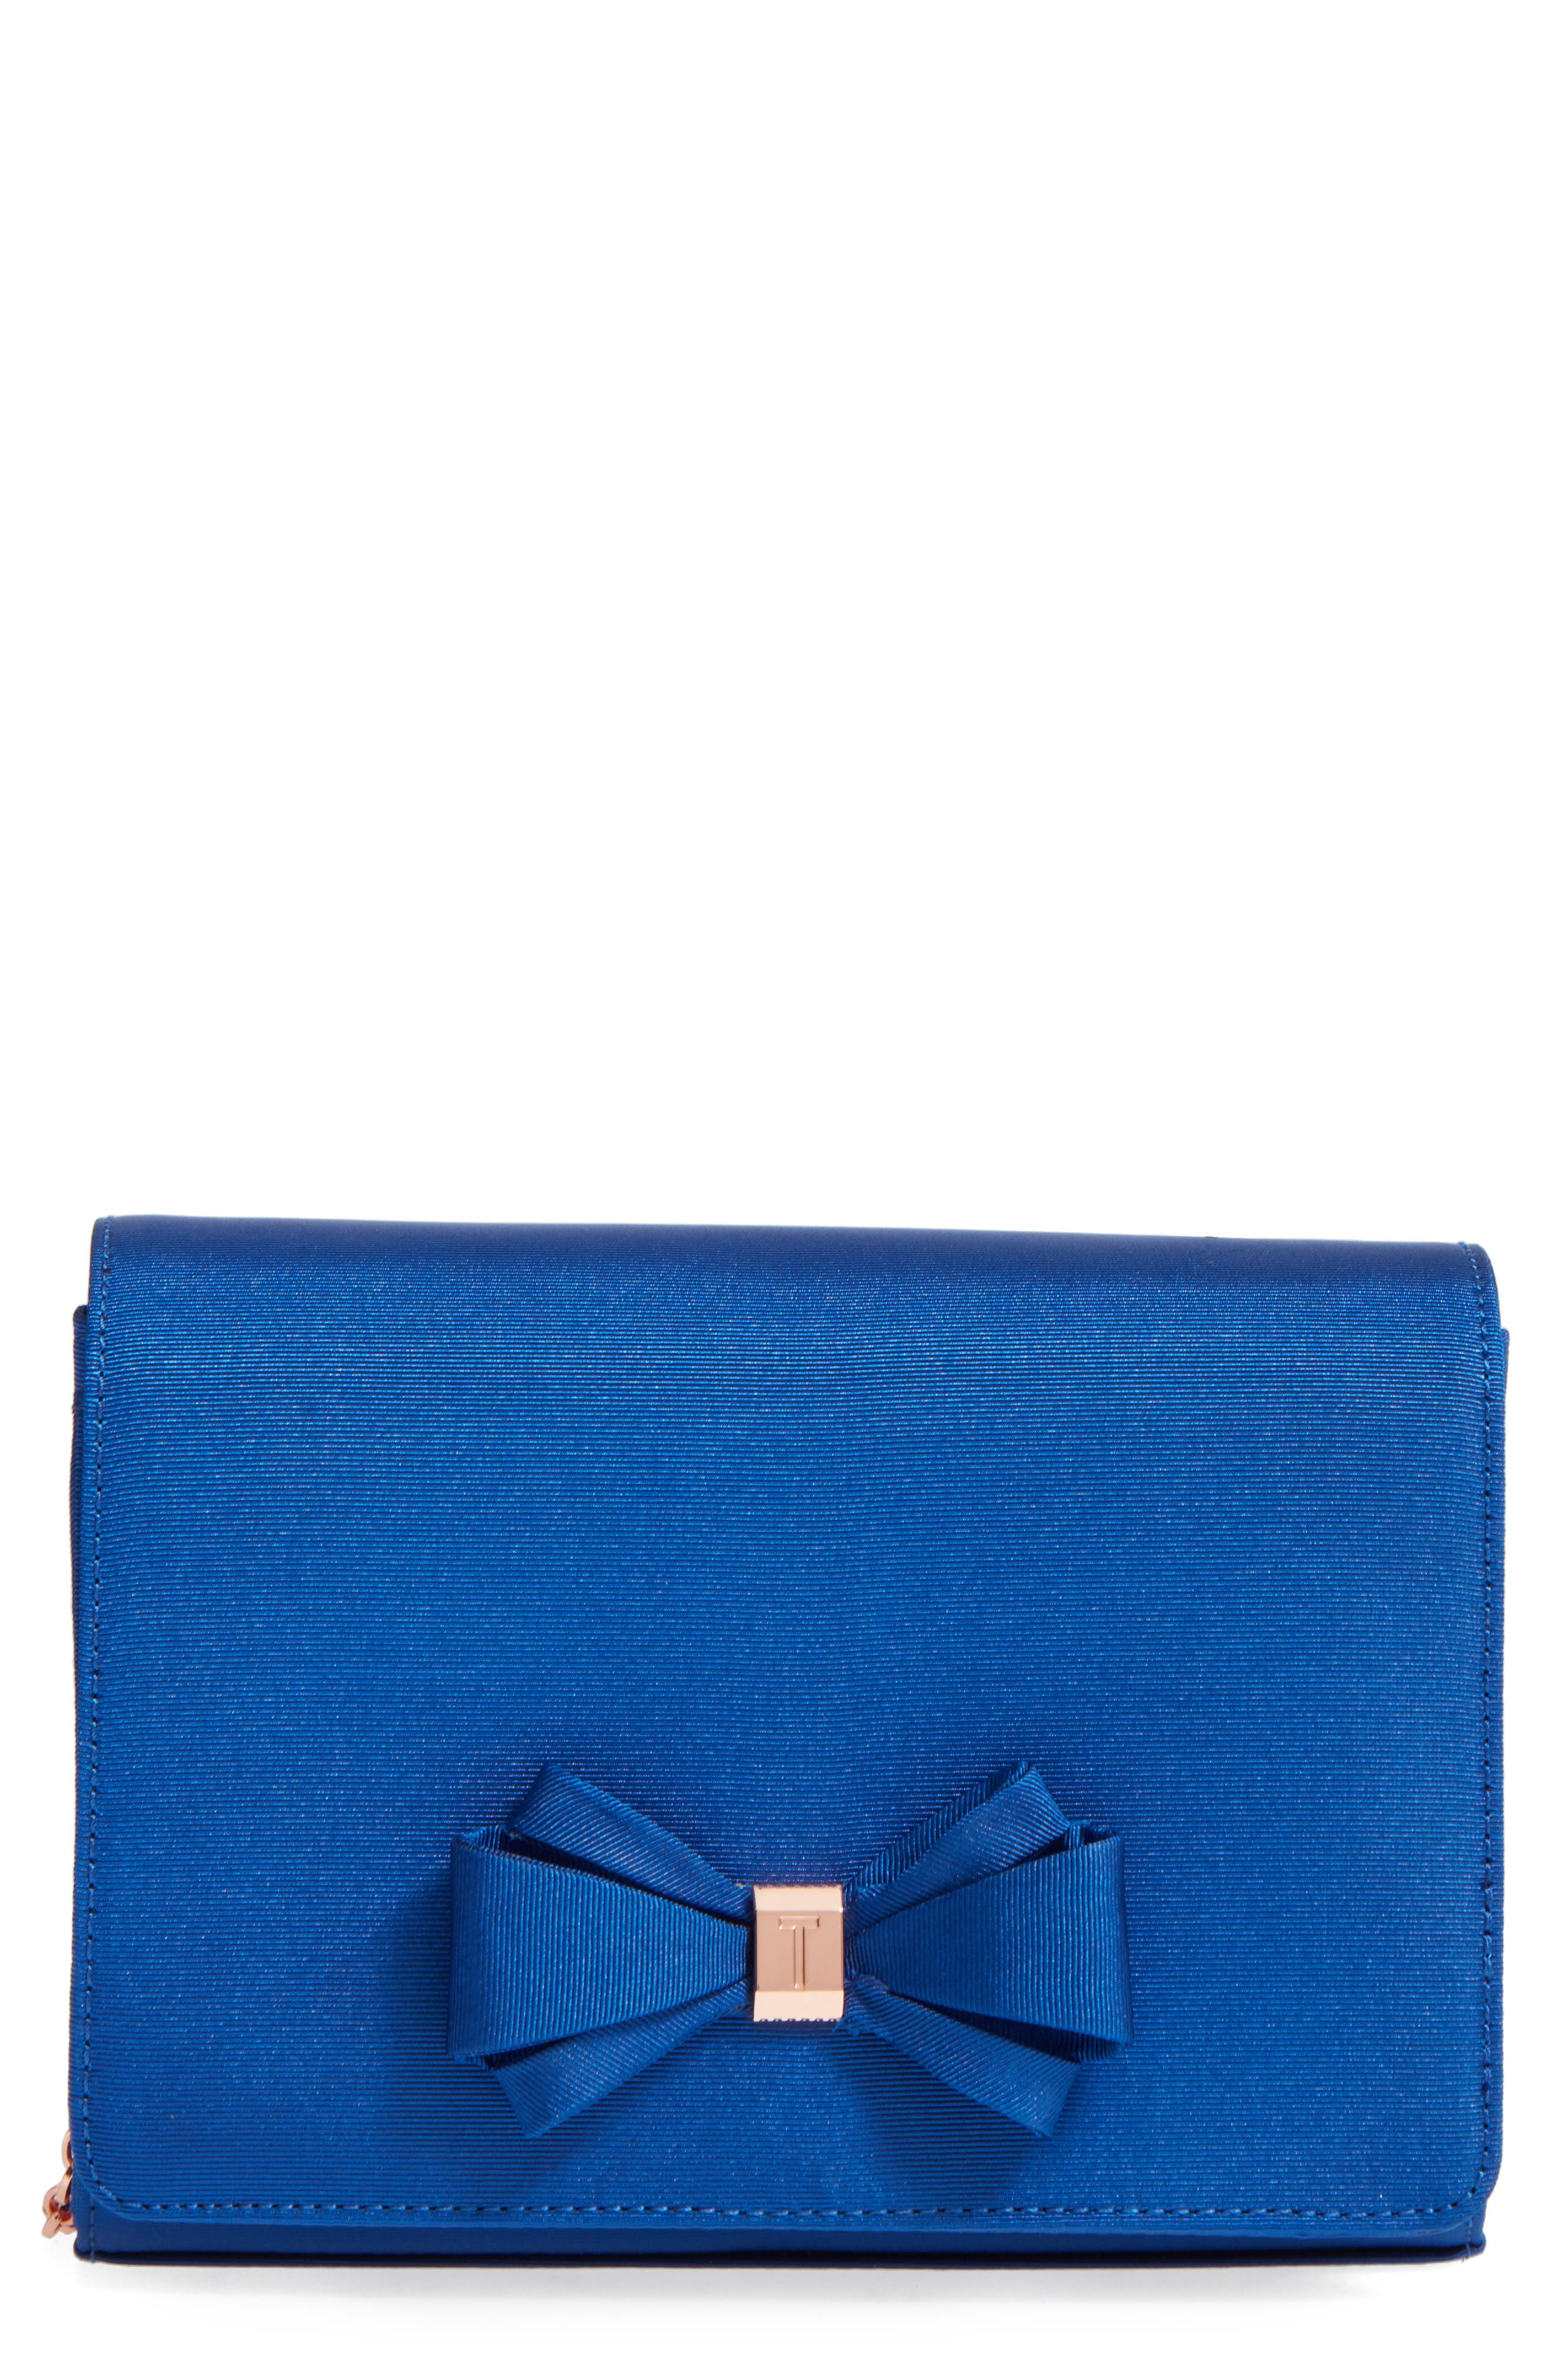 TED BAKER LONDON Bow Clutch